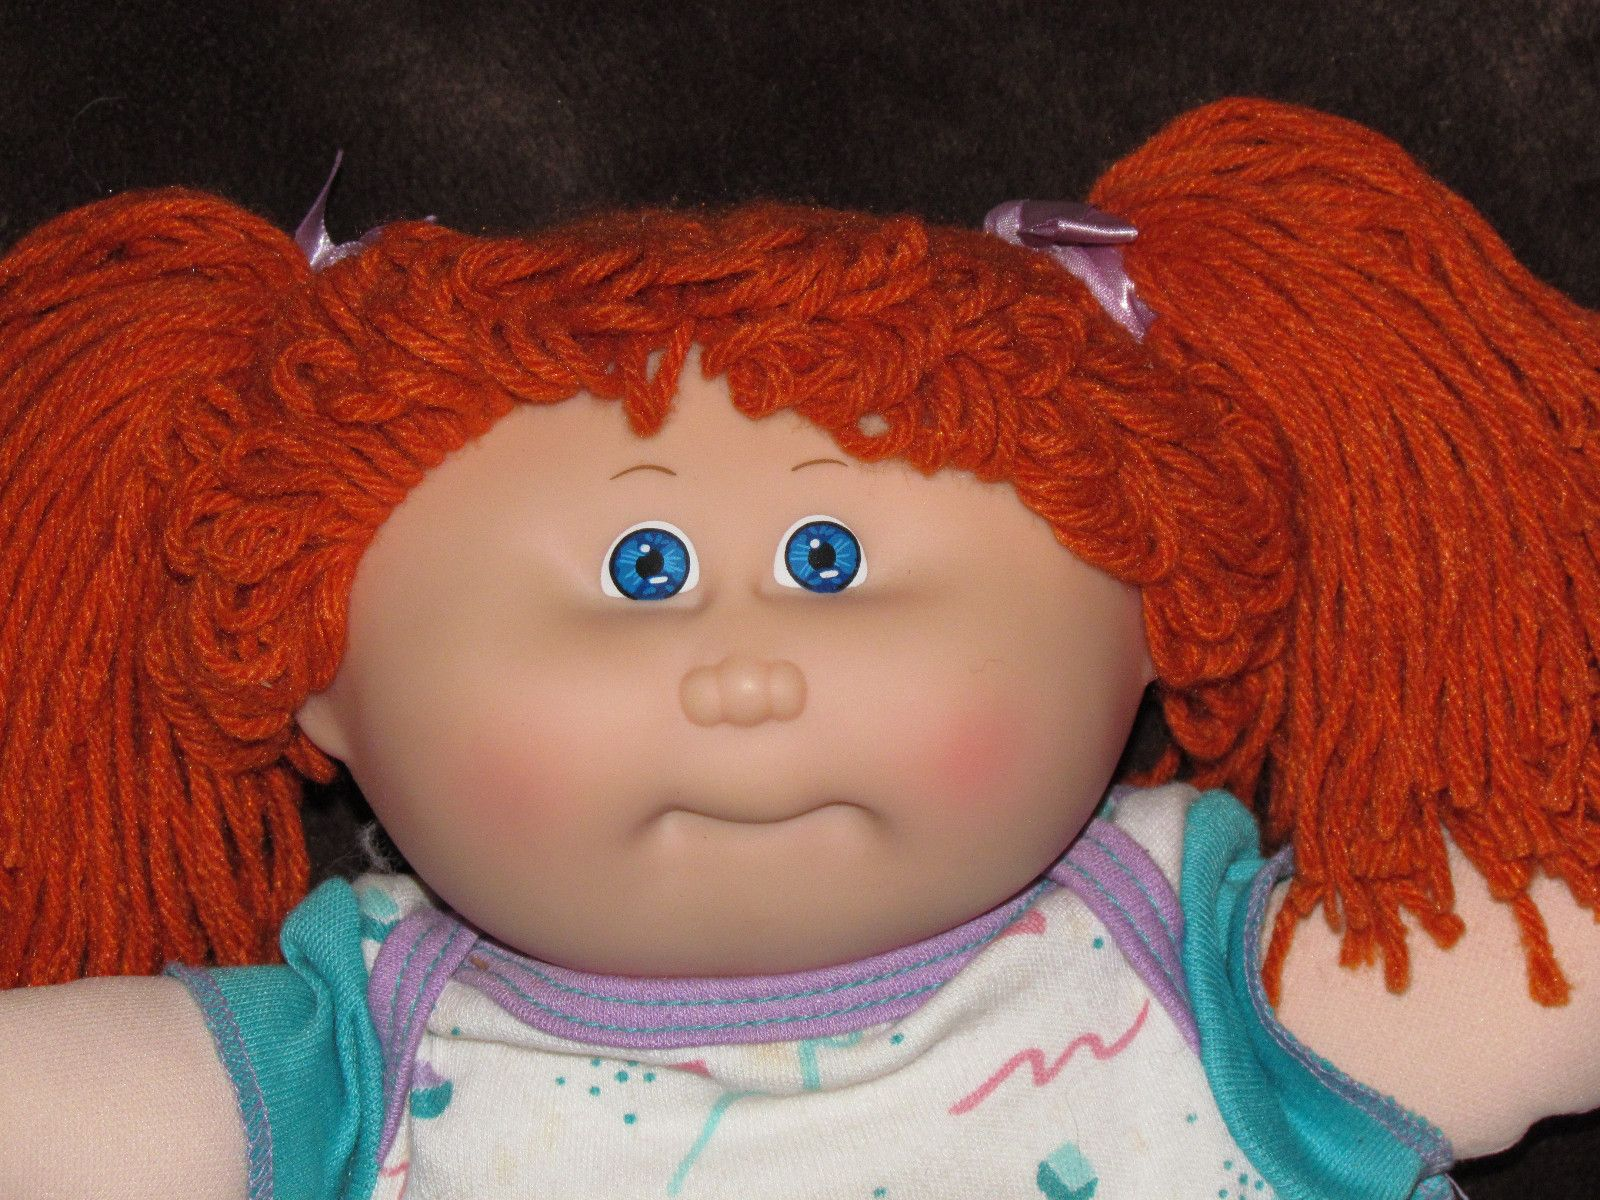 I try to avoid Ebay auctions, but when I saw this adorable redheaded toddler, I knew I had to try for her ! What a nerve-wracking few minutes I went through, before I knew Earlene Nora was now my Daughter !